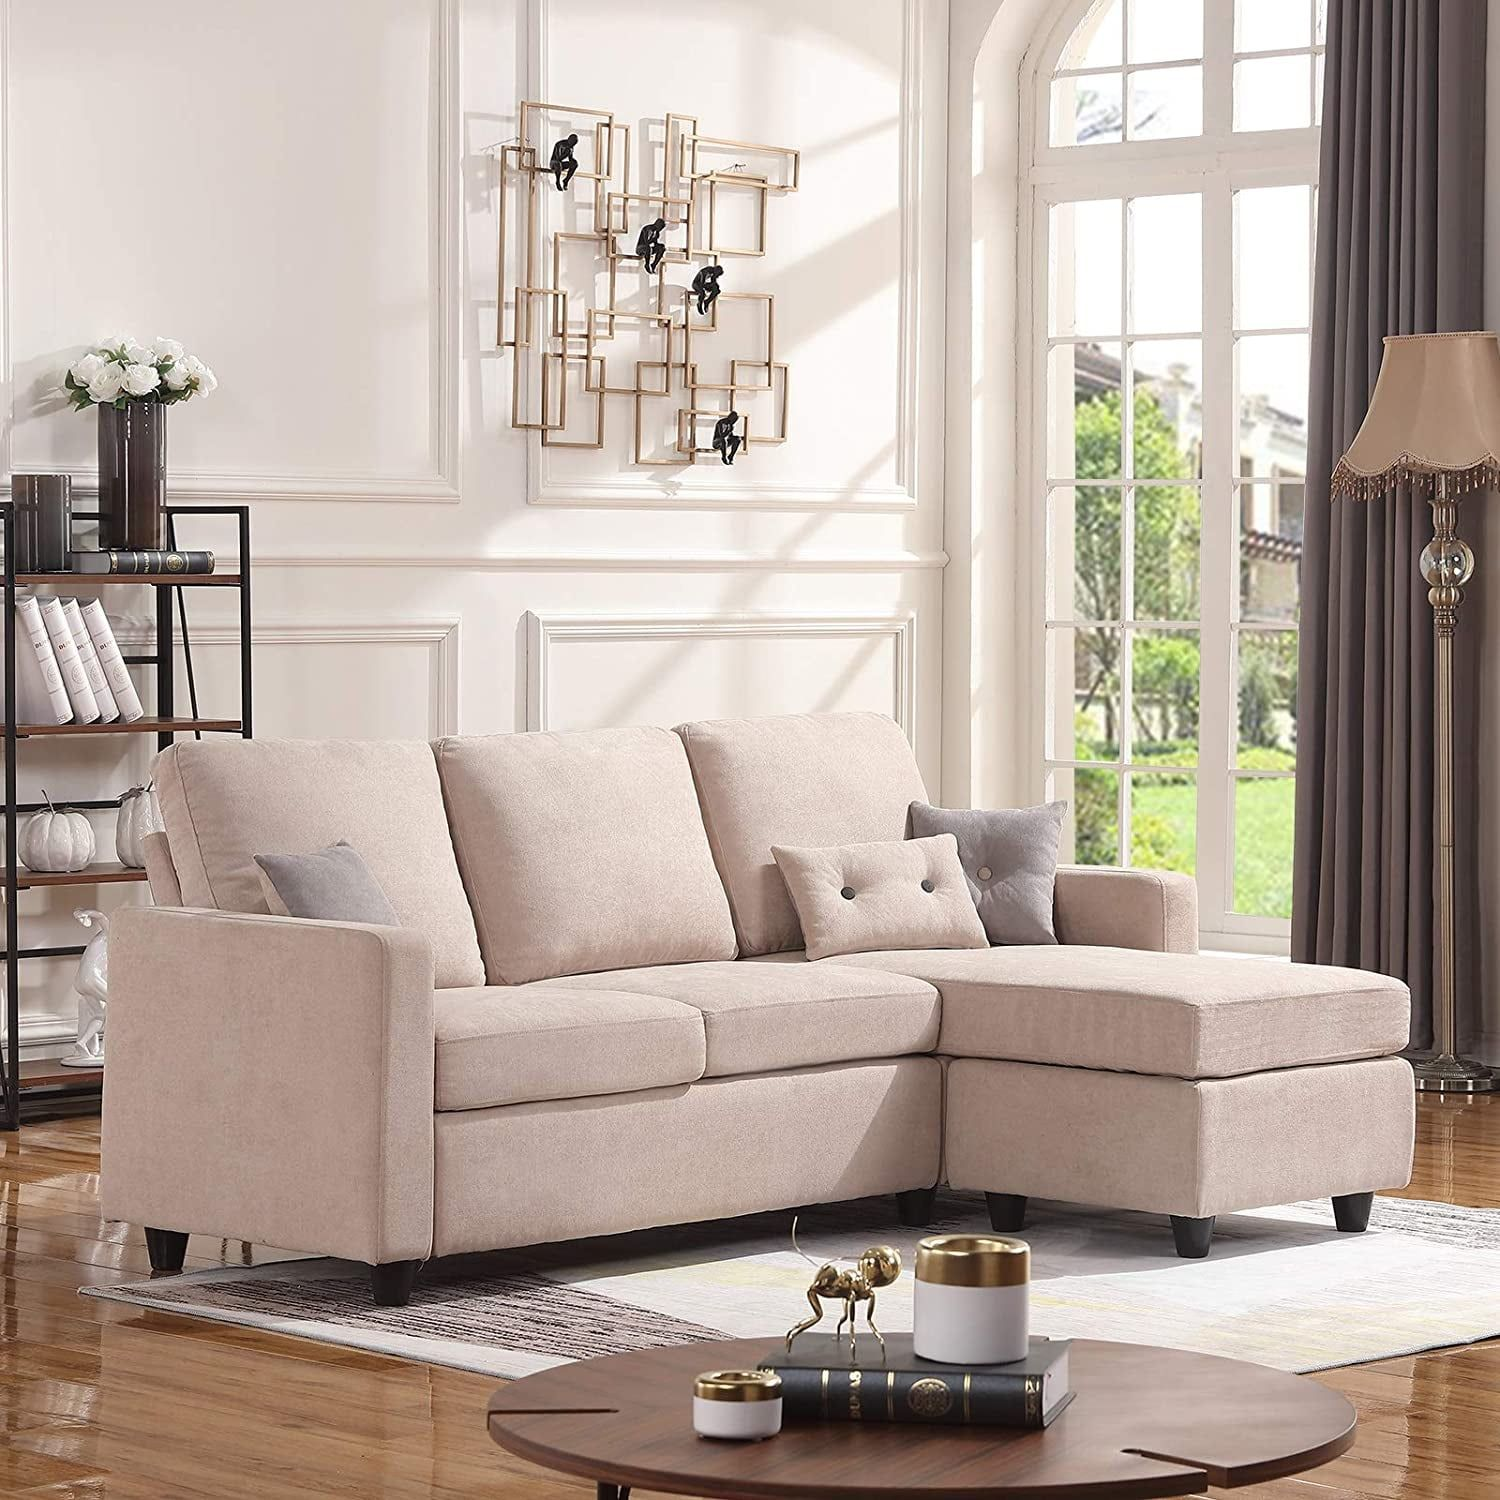 Honbay Convertible Sectional Sofa Couch In 2020 Sofas For Small Spaces Sectional Sofa Couch Couches For Small Spaces